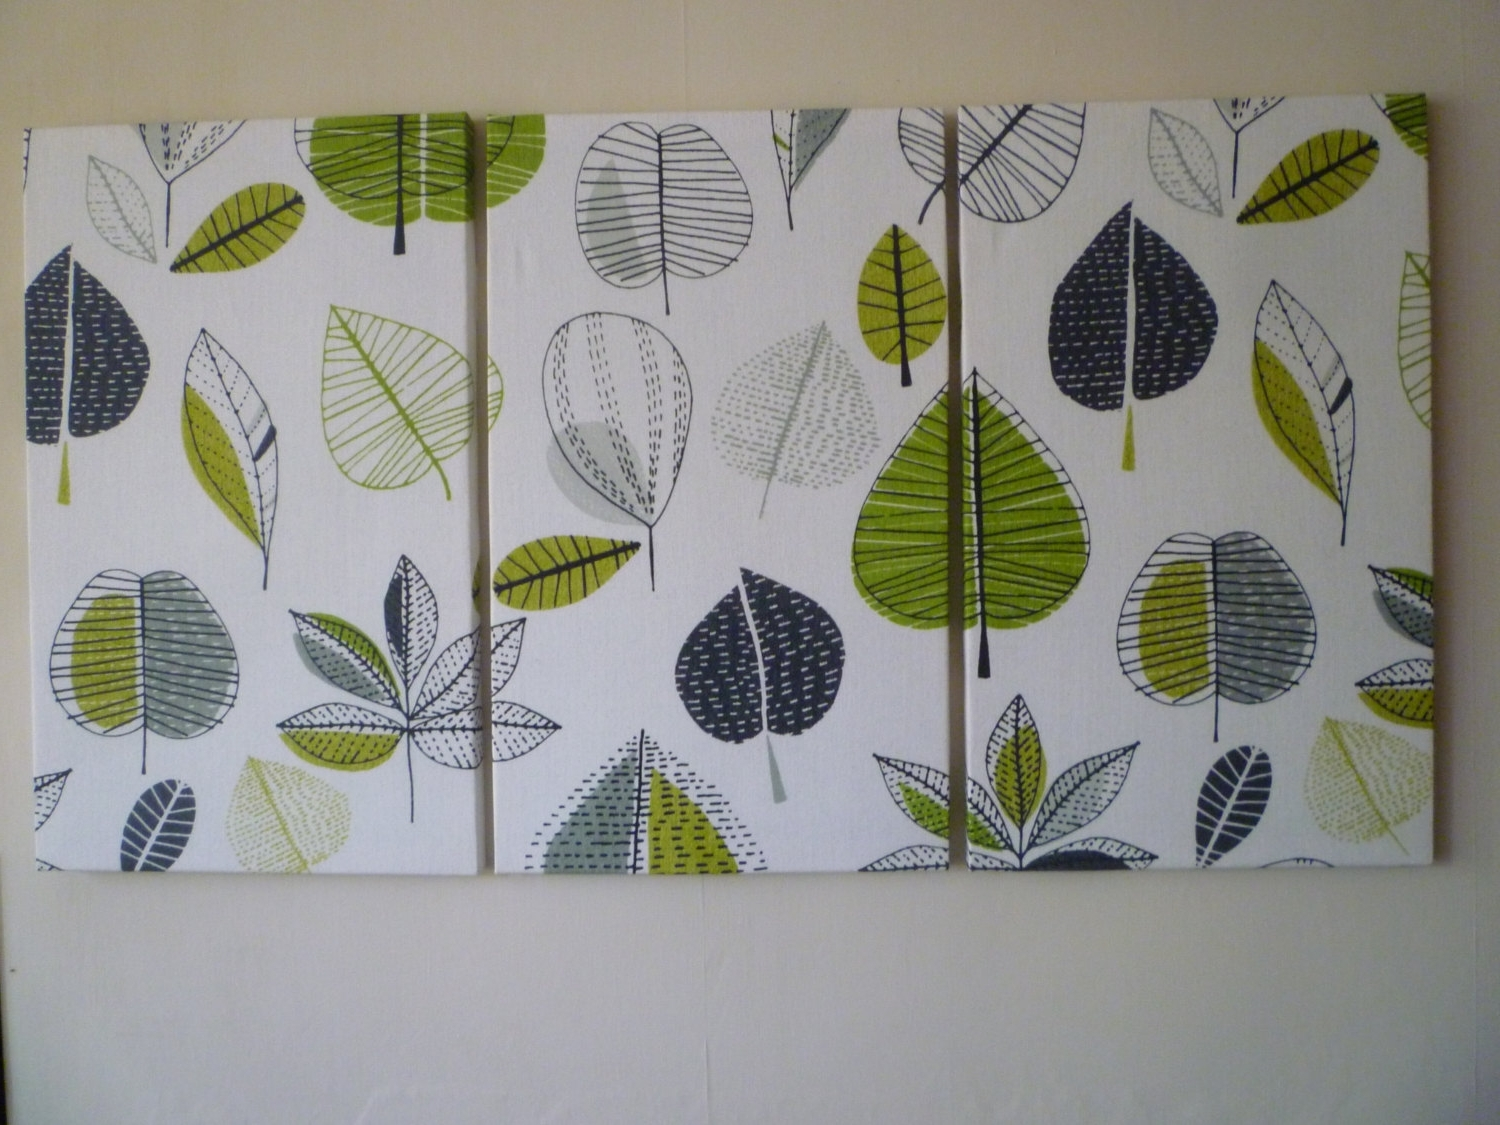 Wall Art Designs: Fabric Wall Art Big Lime Green Fabric Wall Art Pertaining To Popular Contemporary Fabric Wall Art (View 15 of 15)